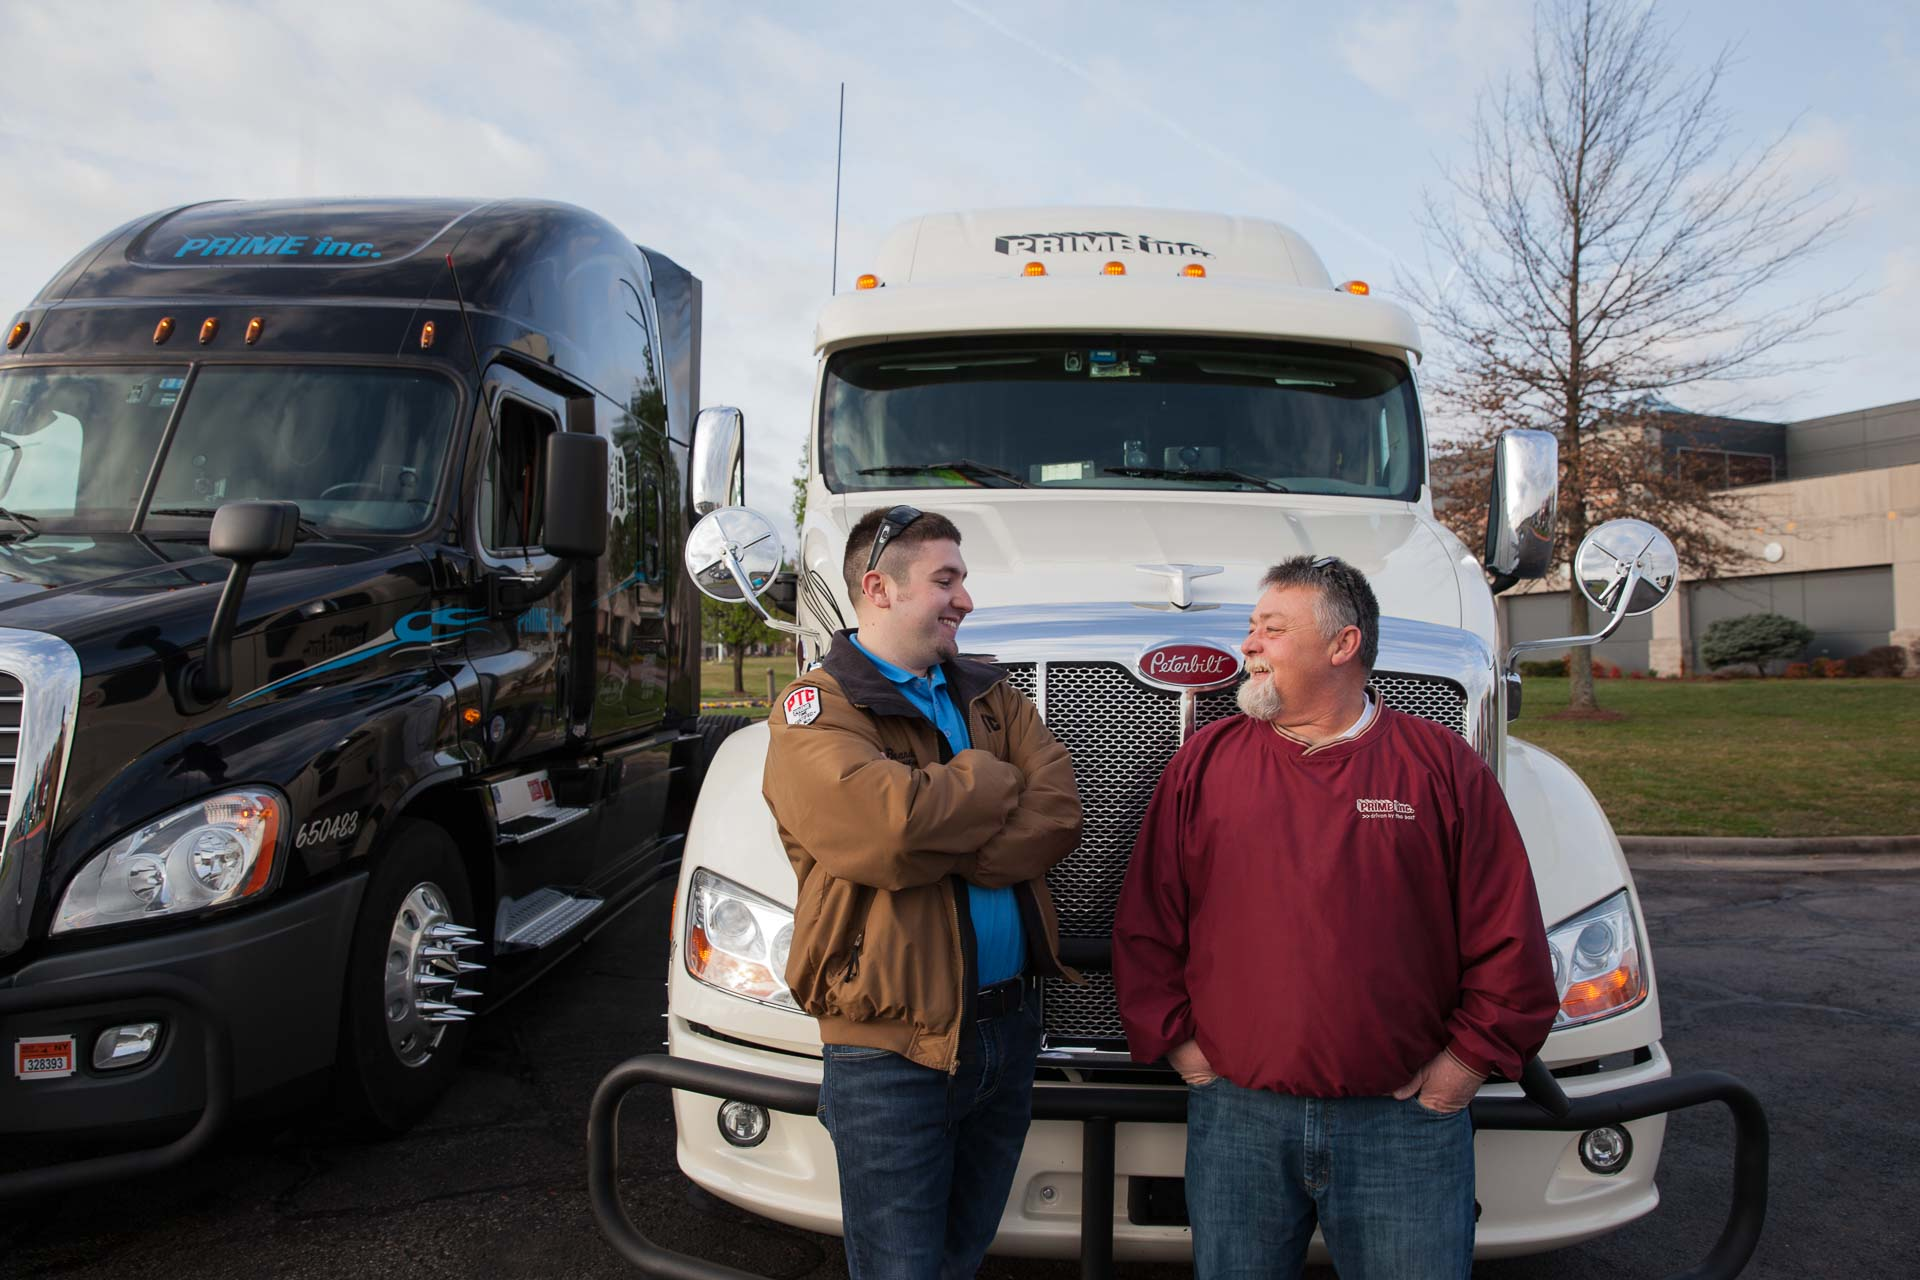 A team of Prime truck drivers talking in front of their newly leased semi-truck.